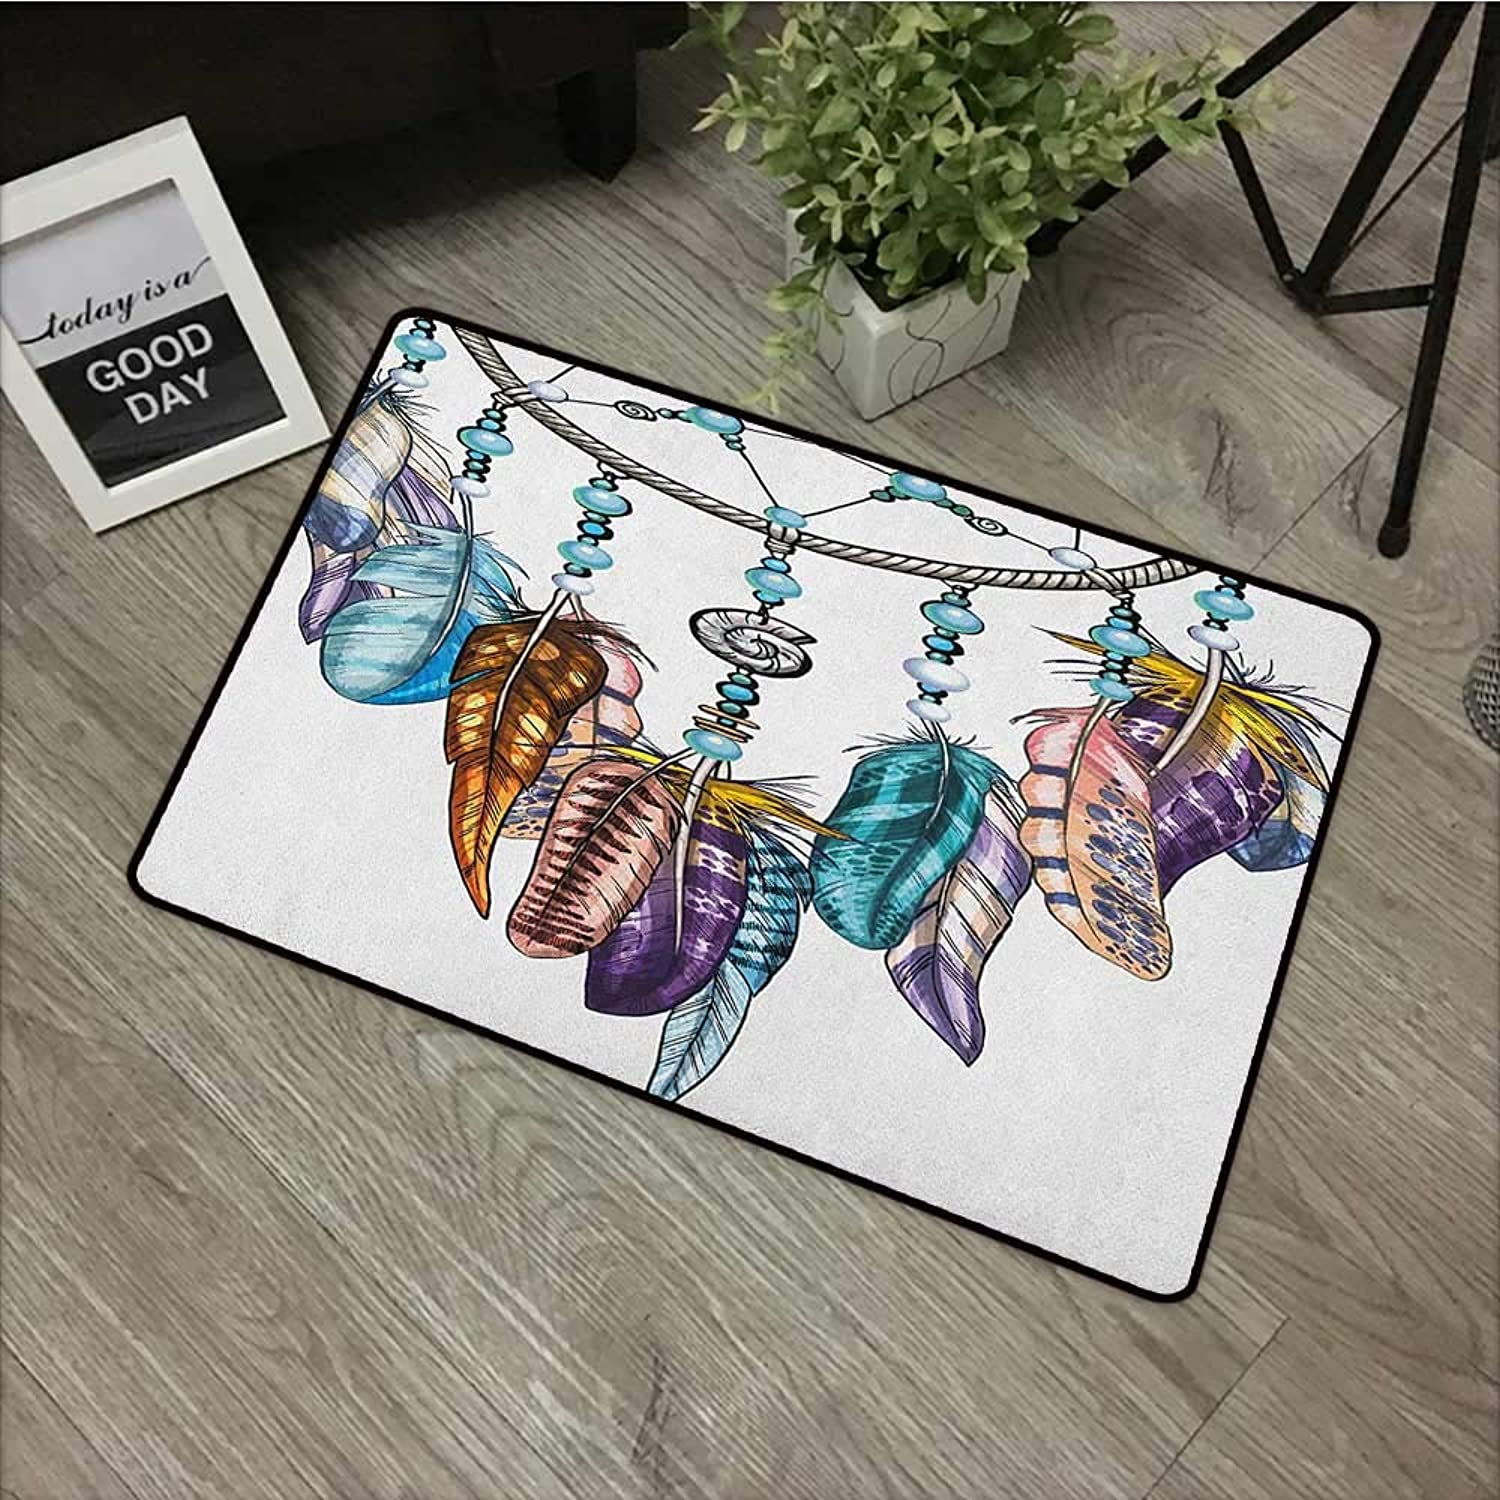 Printed Door mat W31 x L47 INCH Feather,Ornate Dreamcatcher with Feathers and Gemstone Figures Astrology Spiritual Symbol, Multicolor Non-Slip, with Non-Slip Backing,Non-Slip Door Mat Carpet